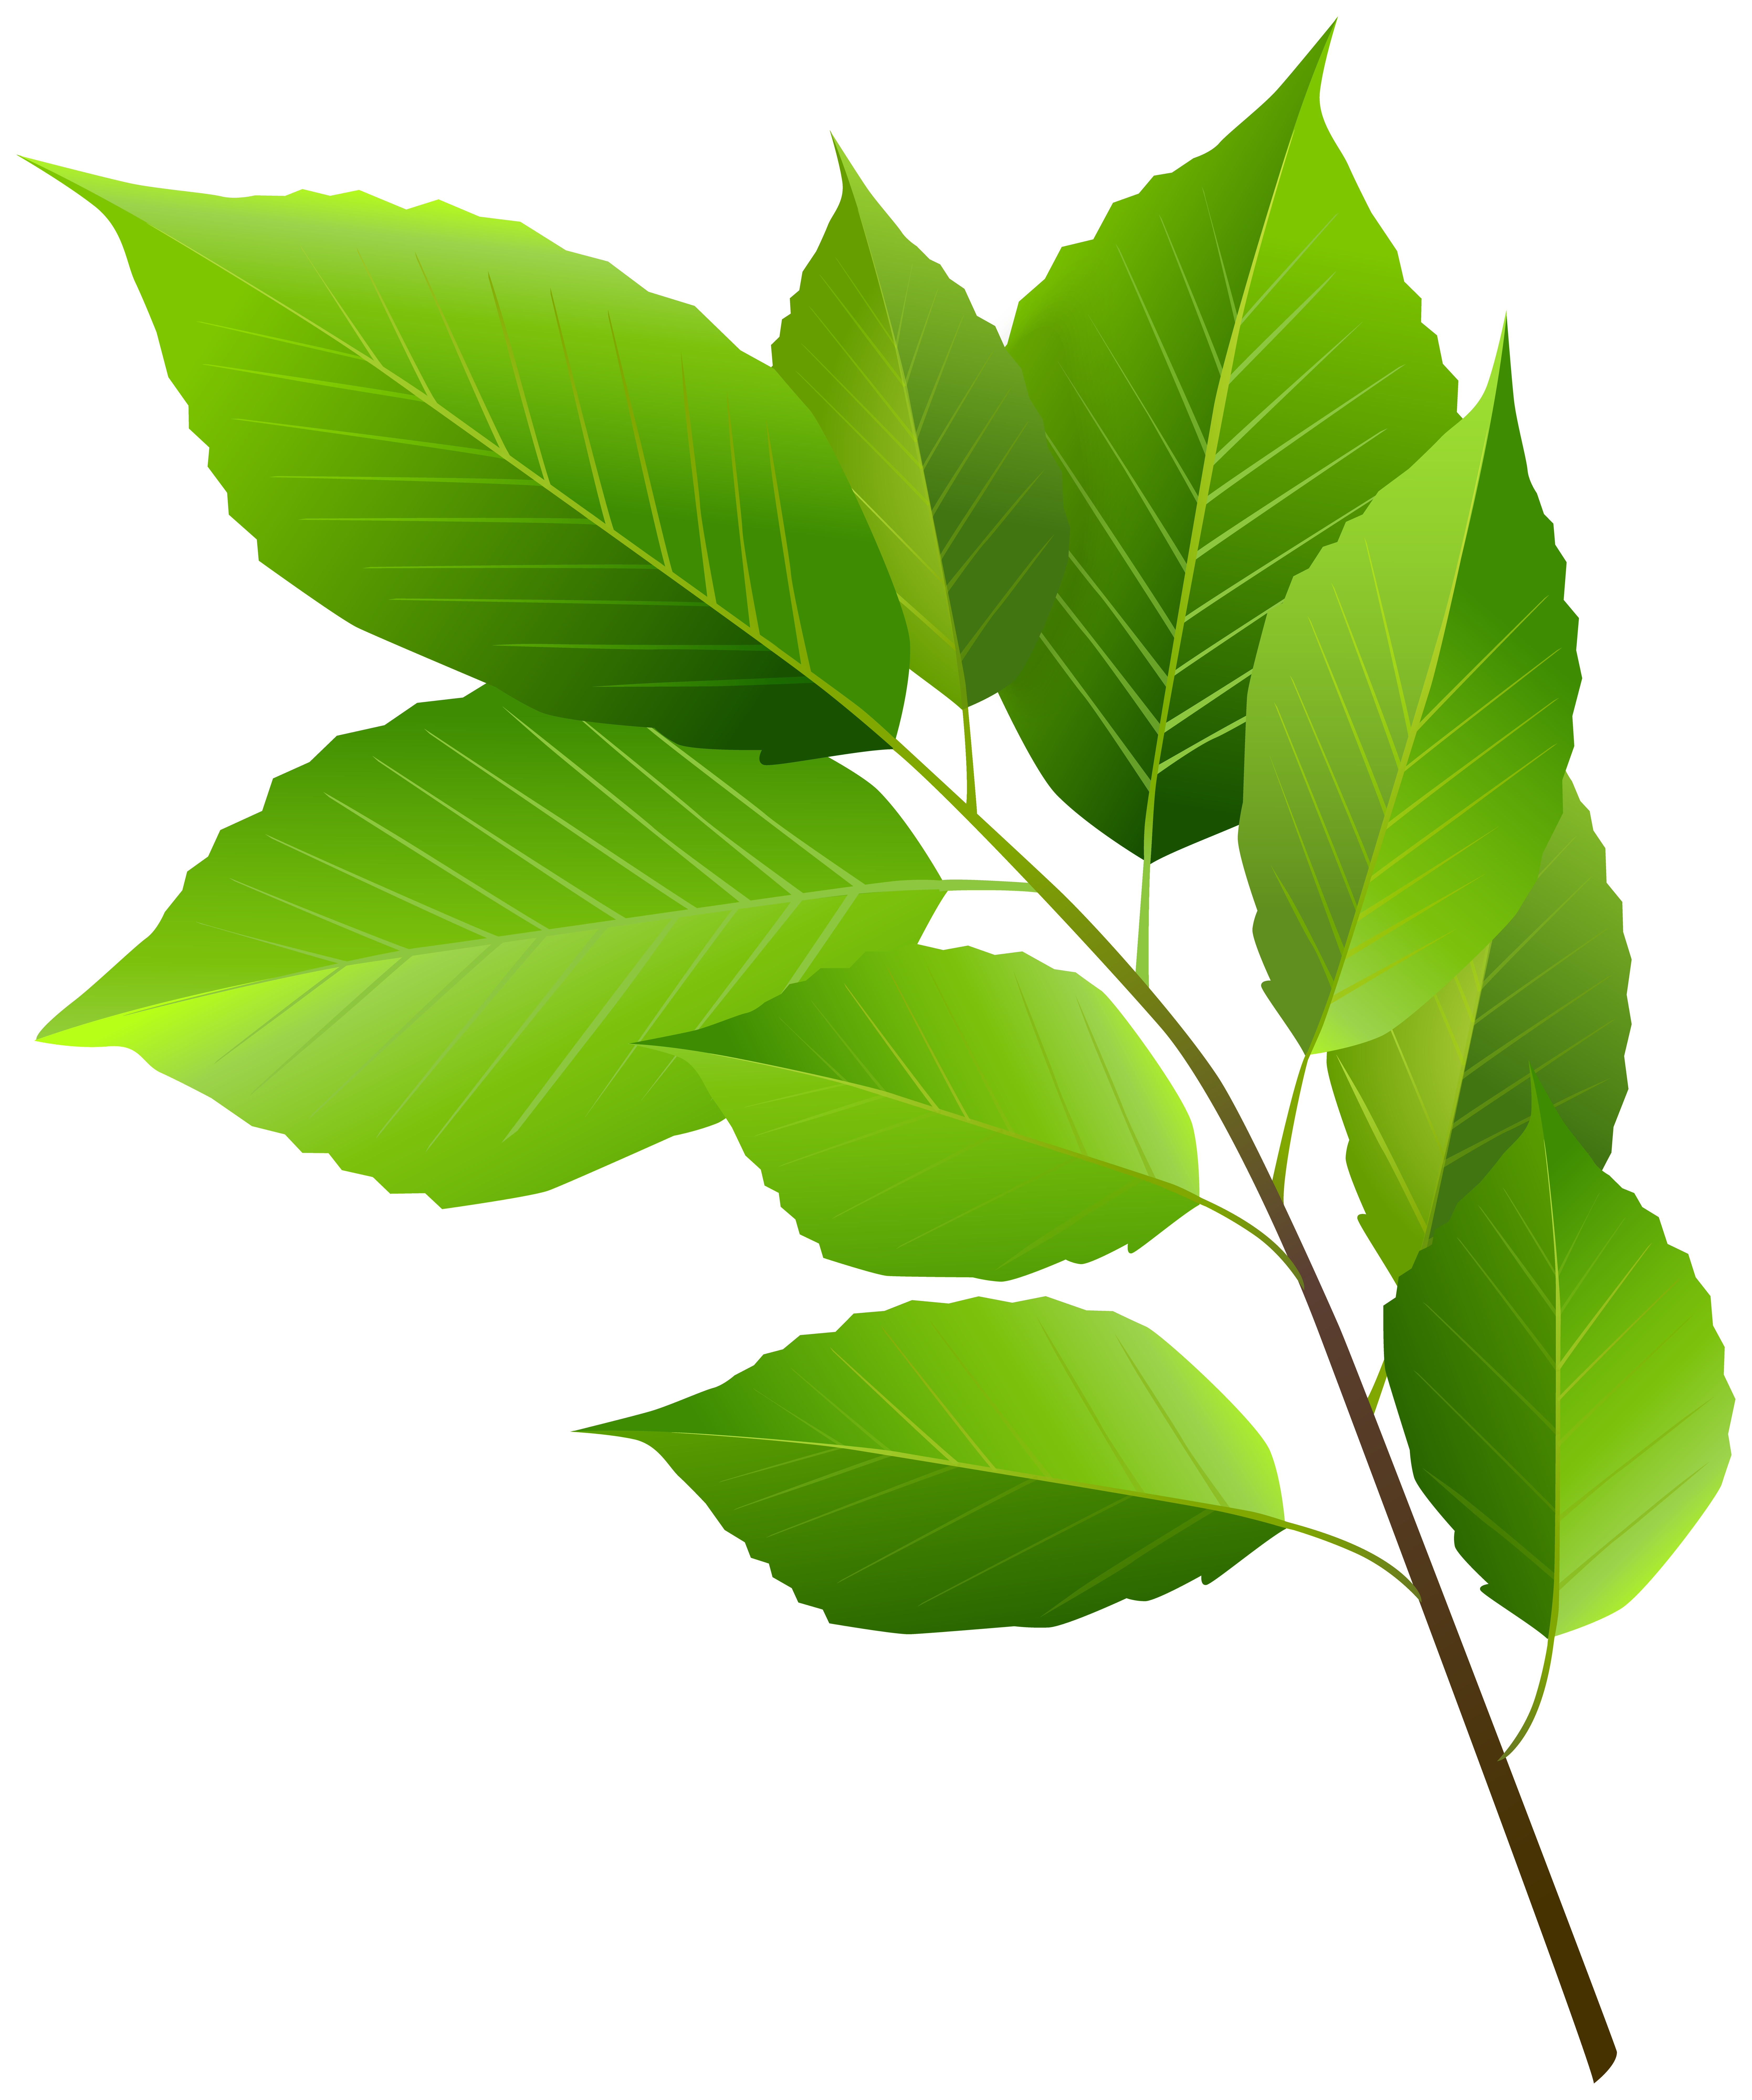 Spring Branch with Green Leaves Clipart Image.